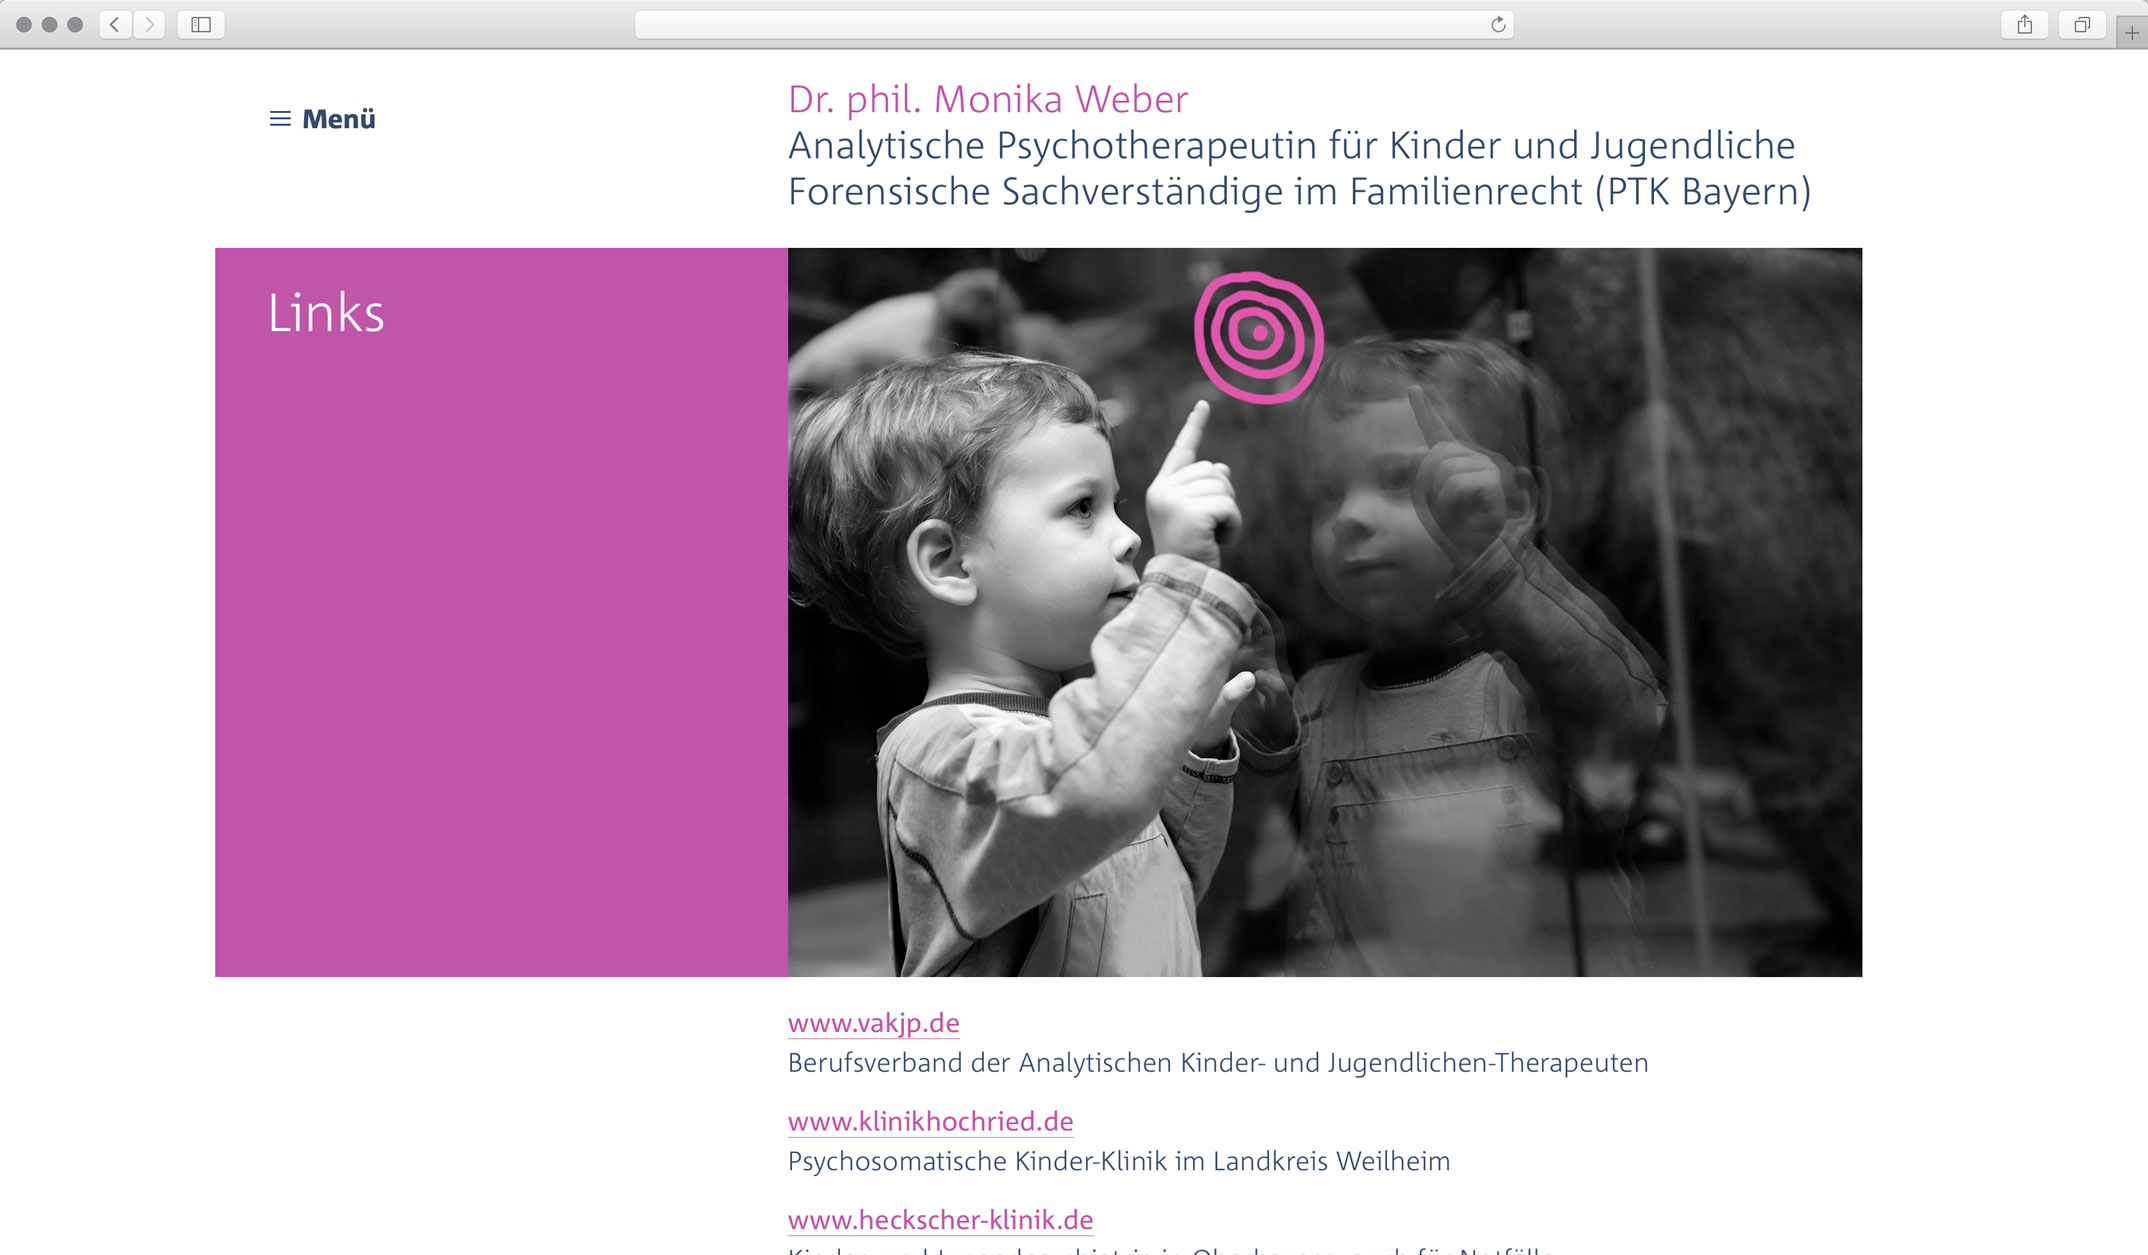 Corporate Website, Unterseite Links – Dr. phil. Monika Weber Analytische Kinder- und Jugendtherapeut, forensische Gutachten